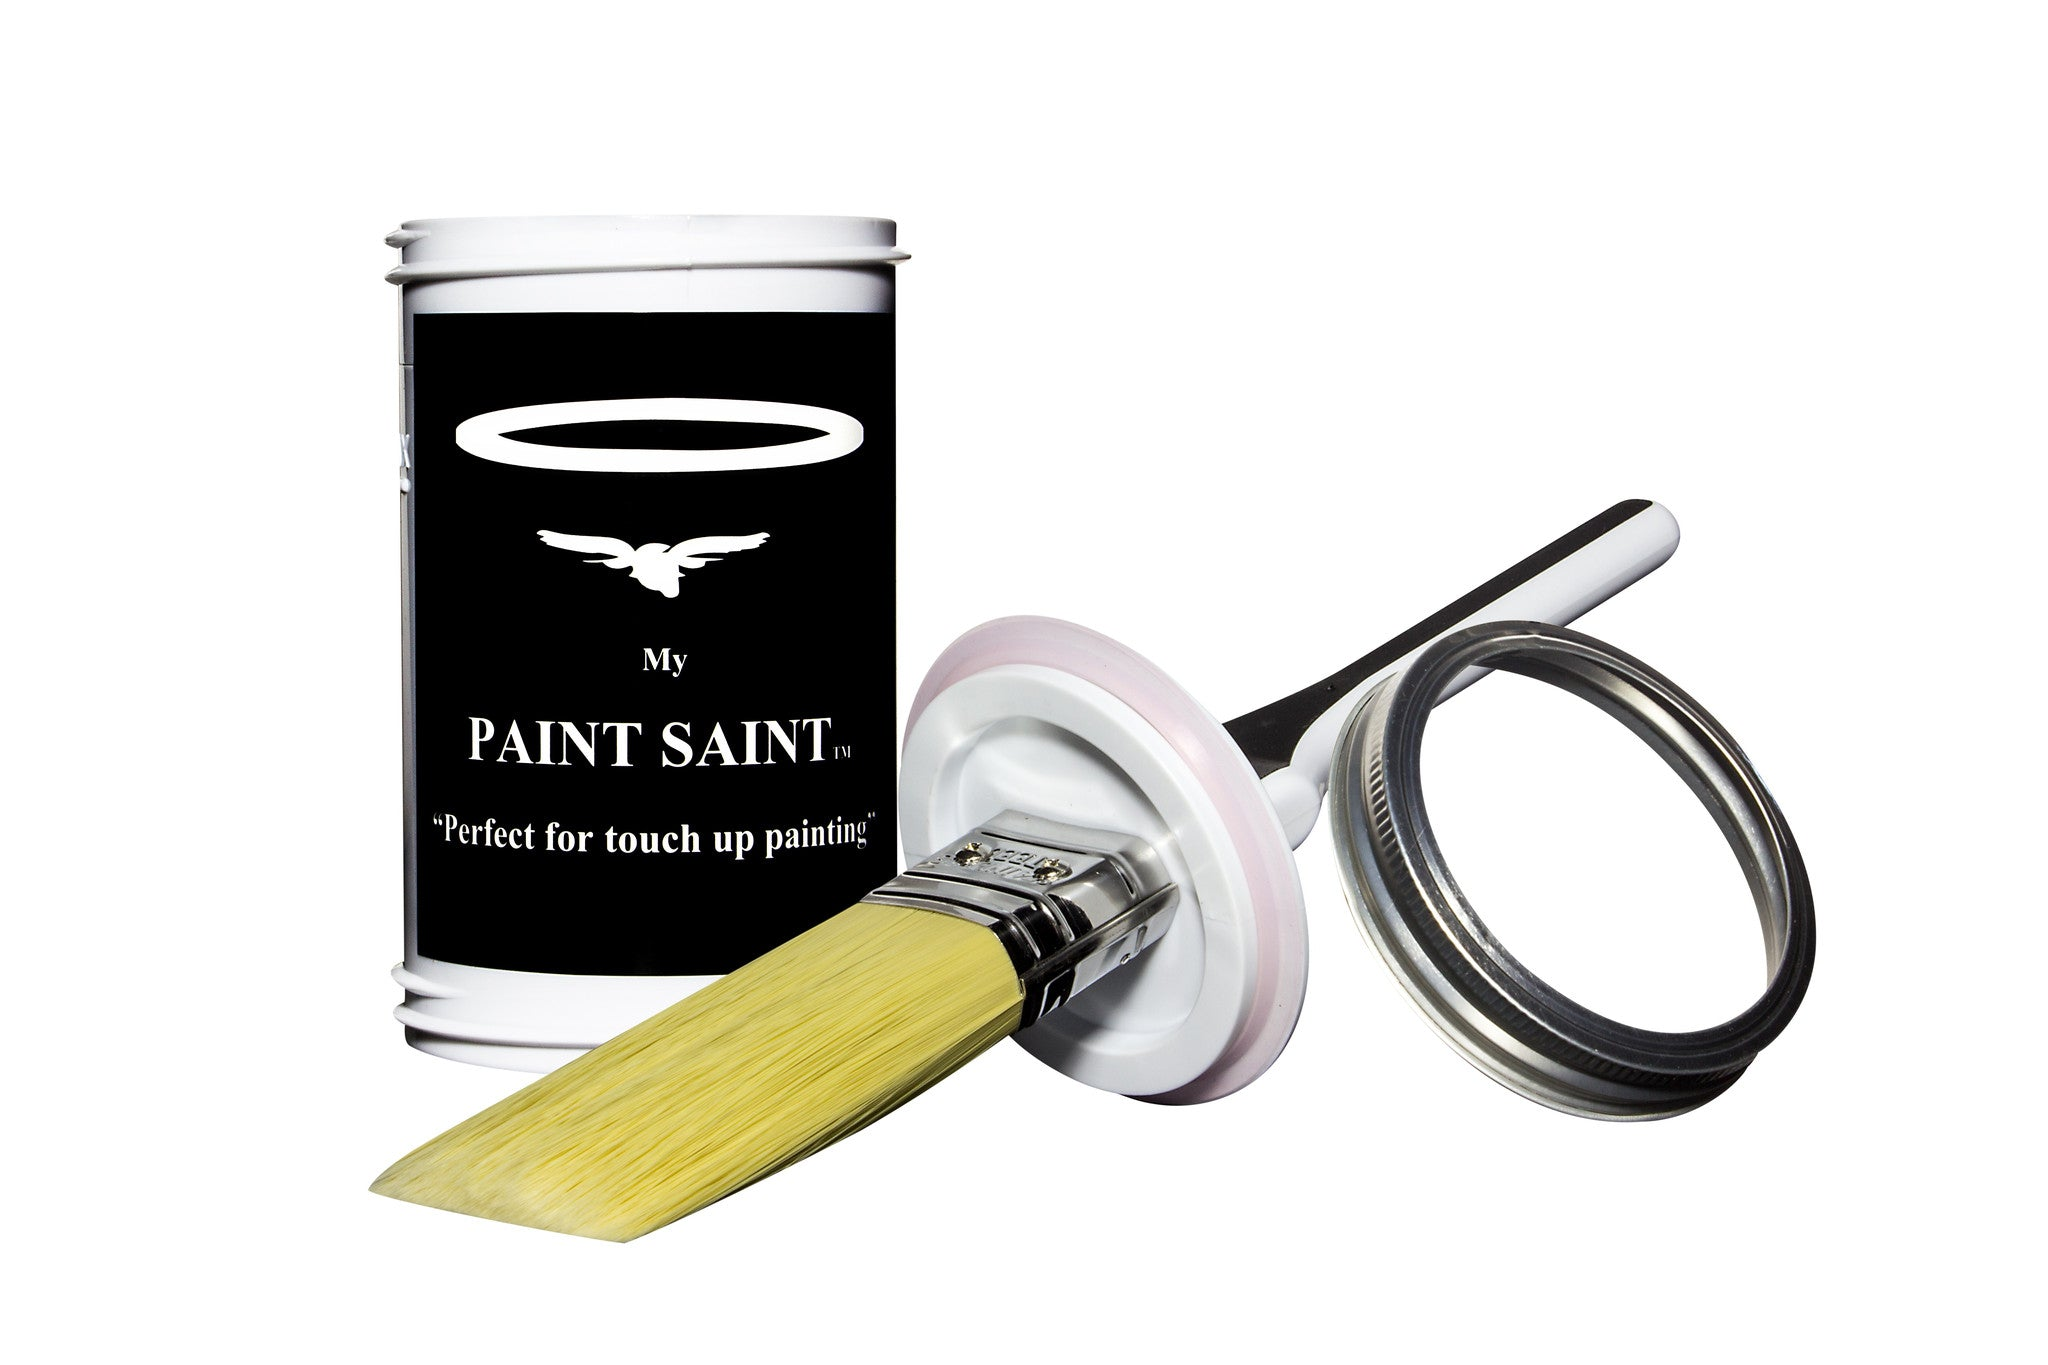 8 Paint Saints FREE SHIPPING! The Ultimate Touch Up Paint Brush and Can for Interior or Exterior Painting